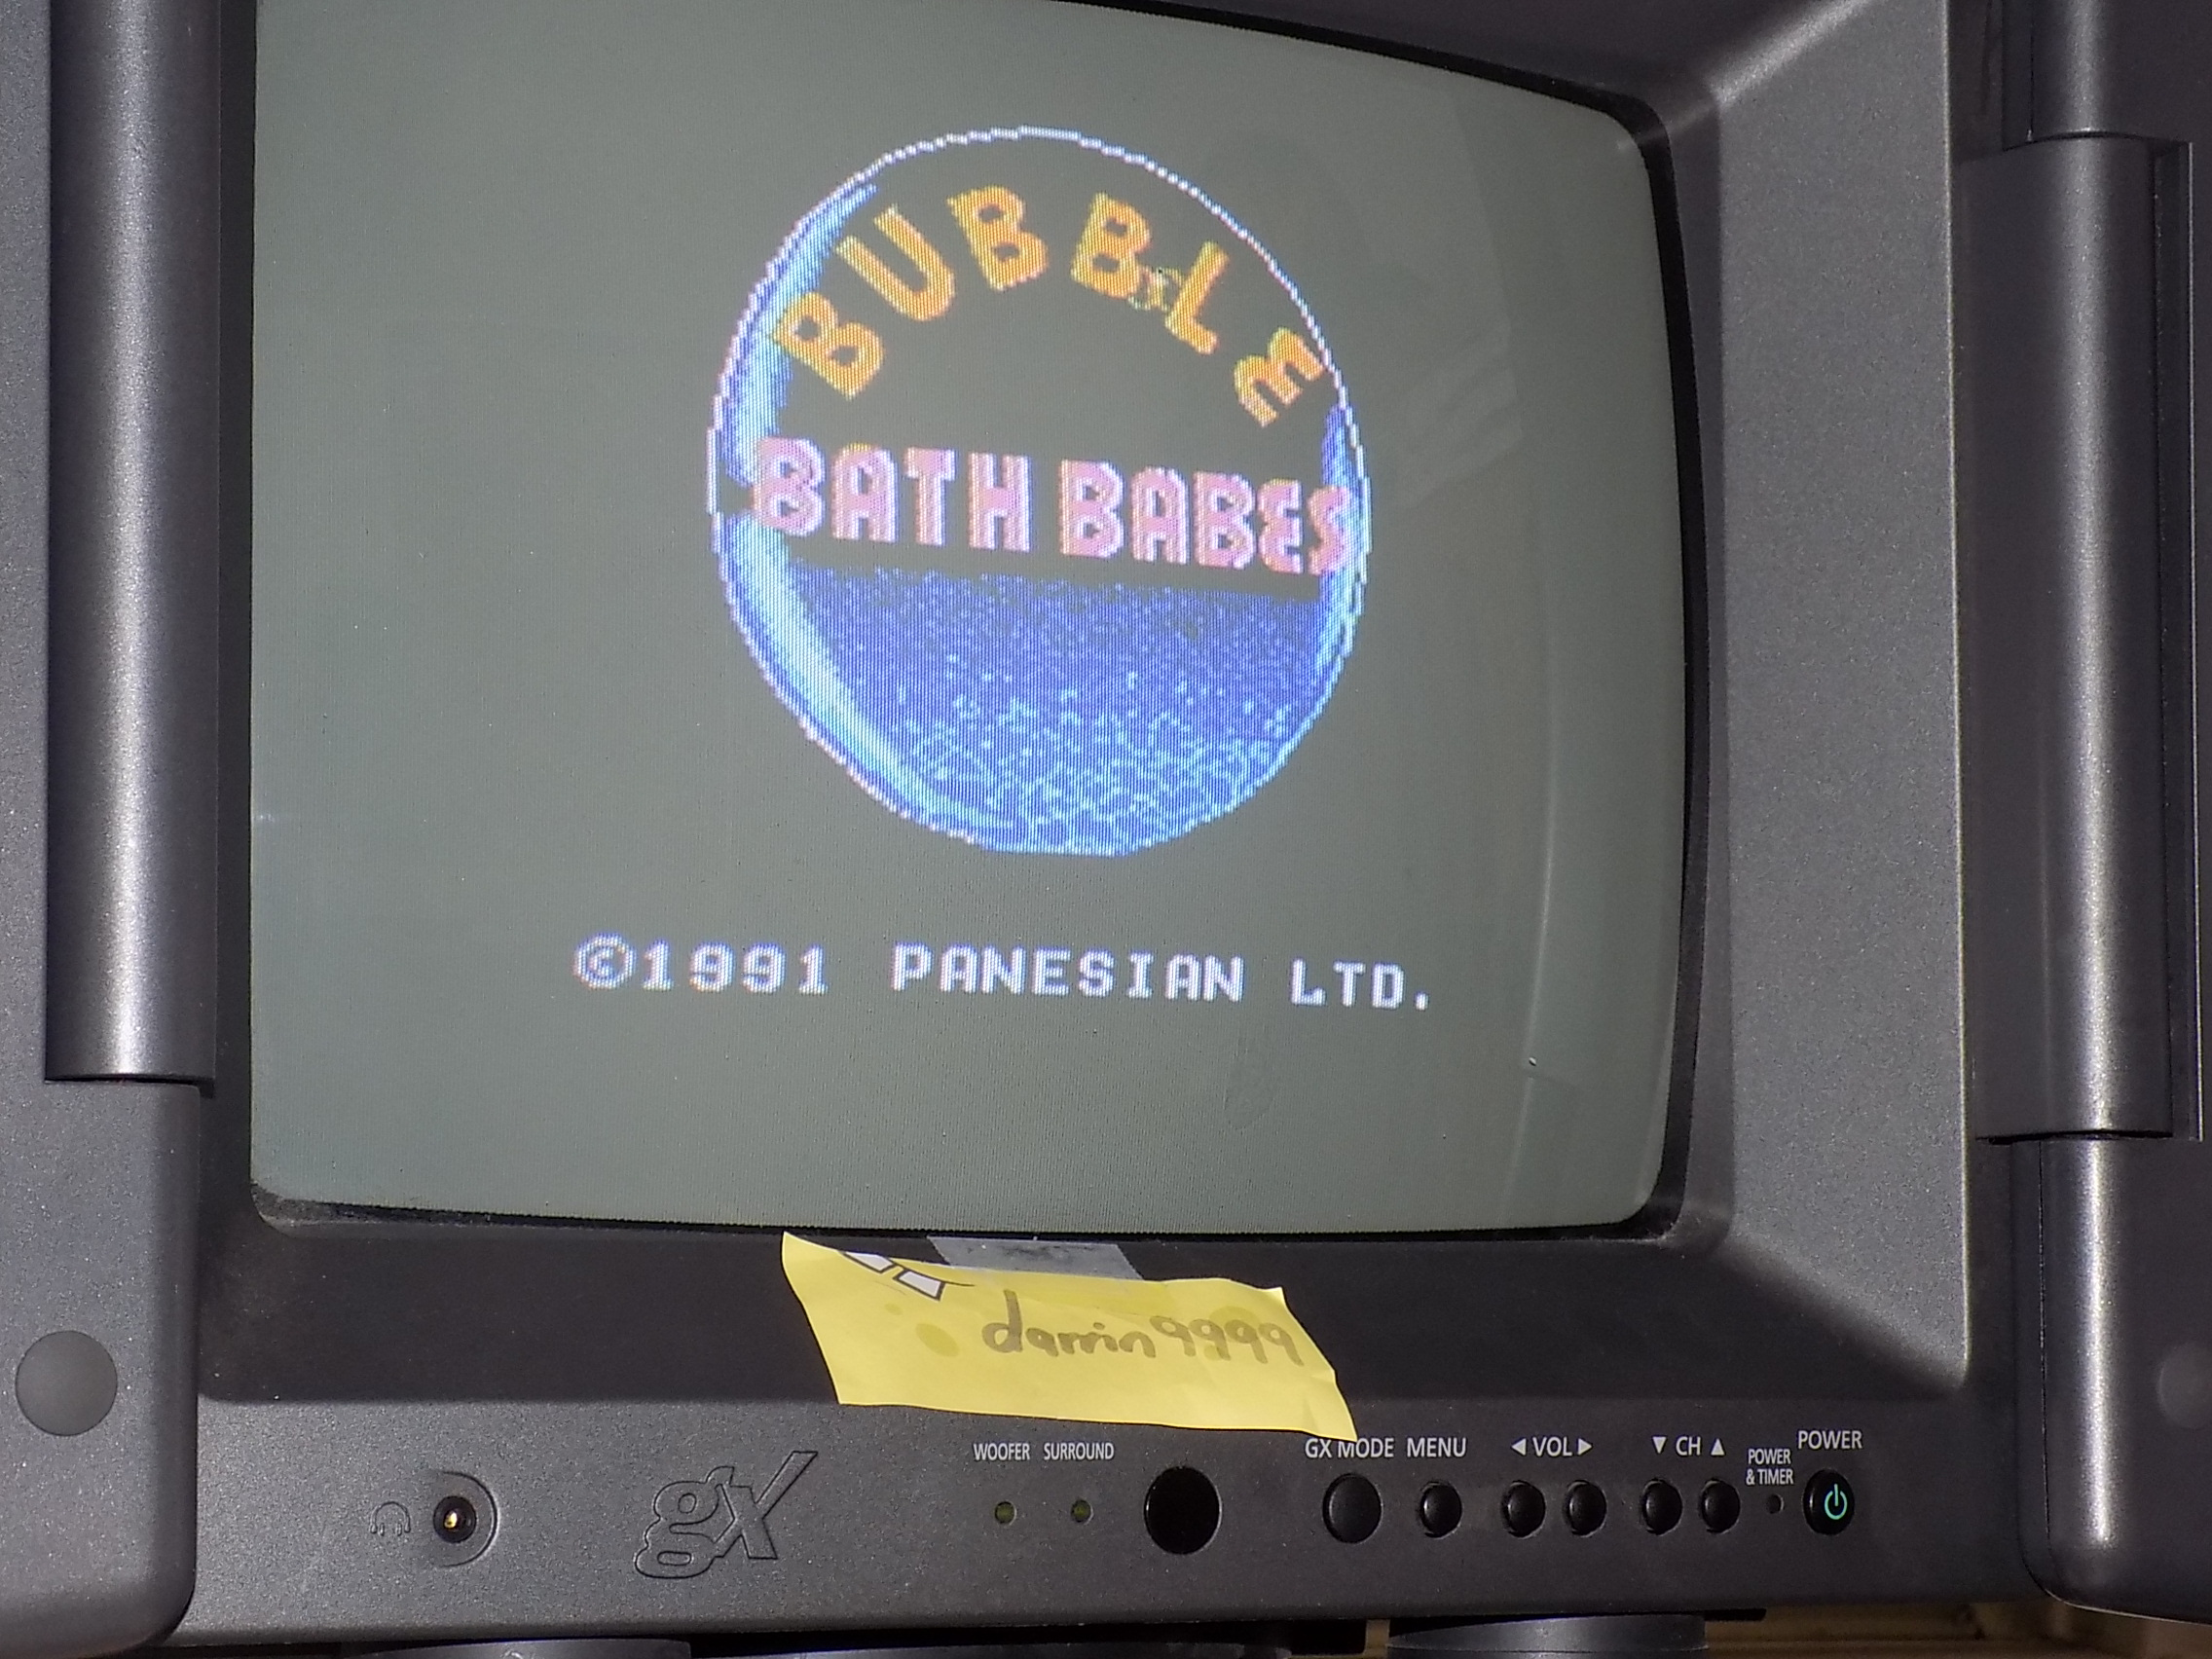 darrin9999: Bubble Bath Babes [Type A] (NES/Famicom) 11,546 points on 2018-02-04 09:39:54